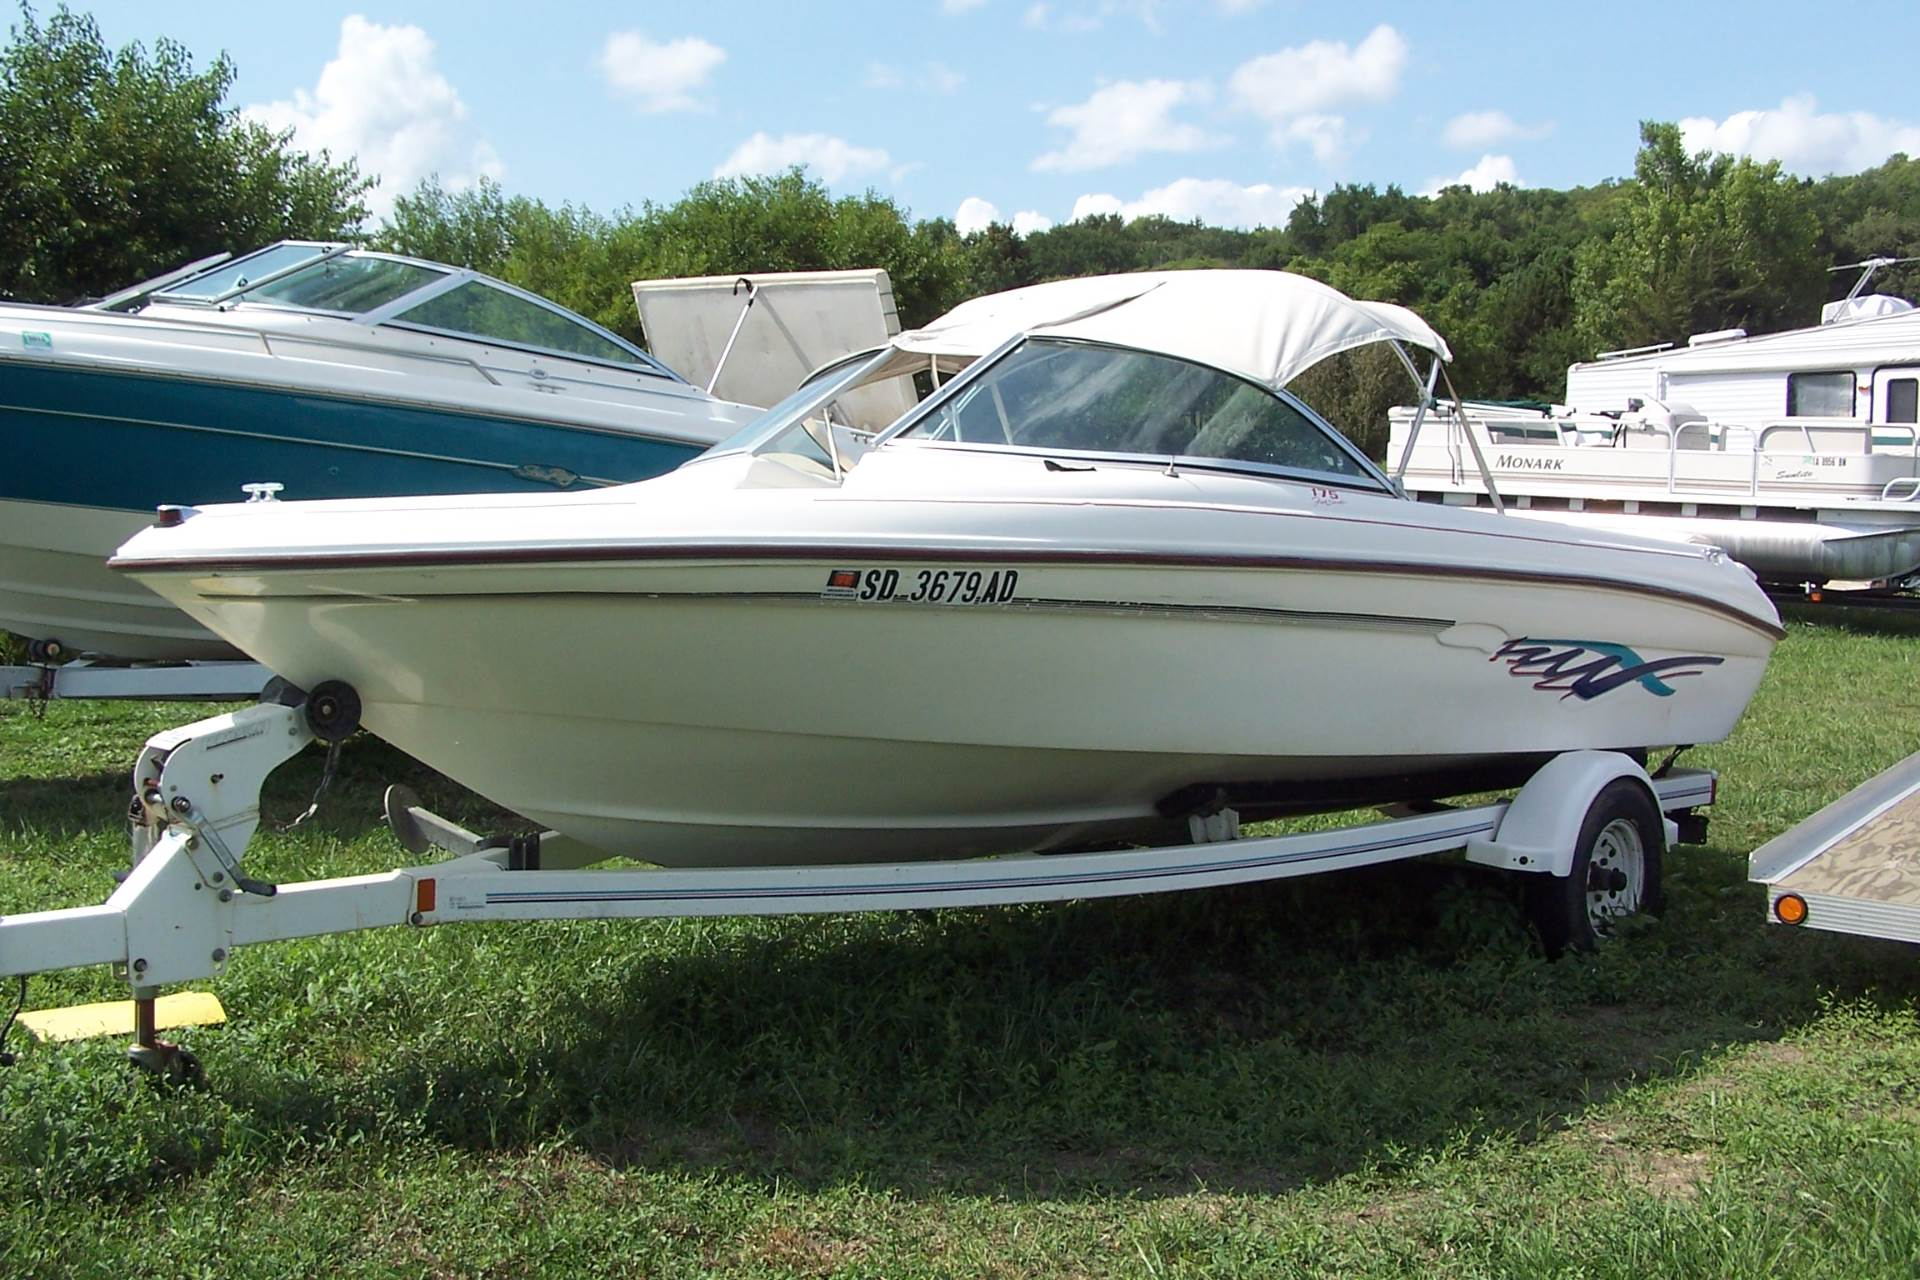 1995 Sea Ray 175 series bow rider in Yankton, South Dakota